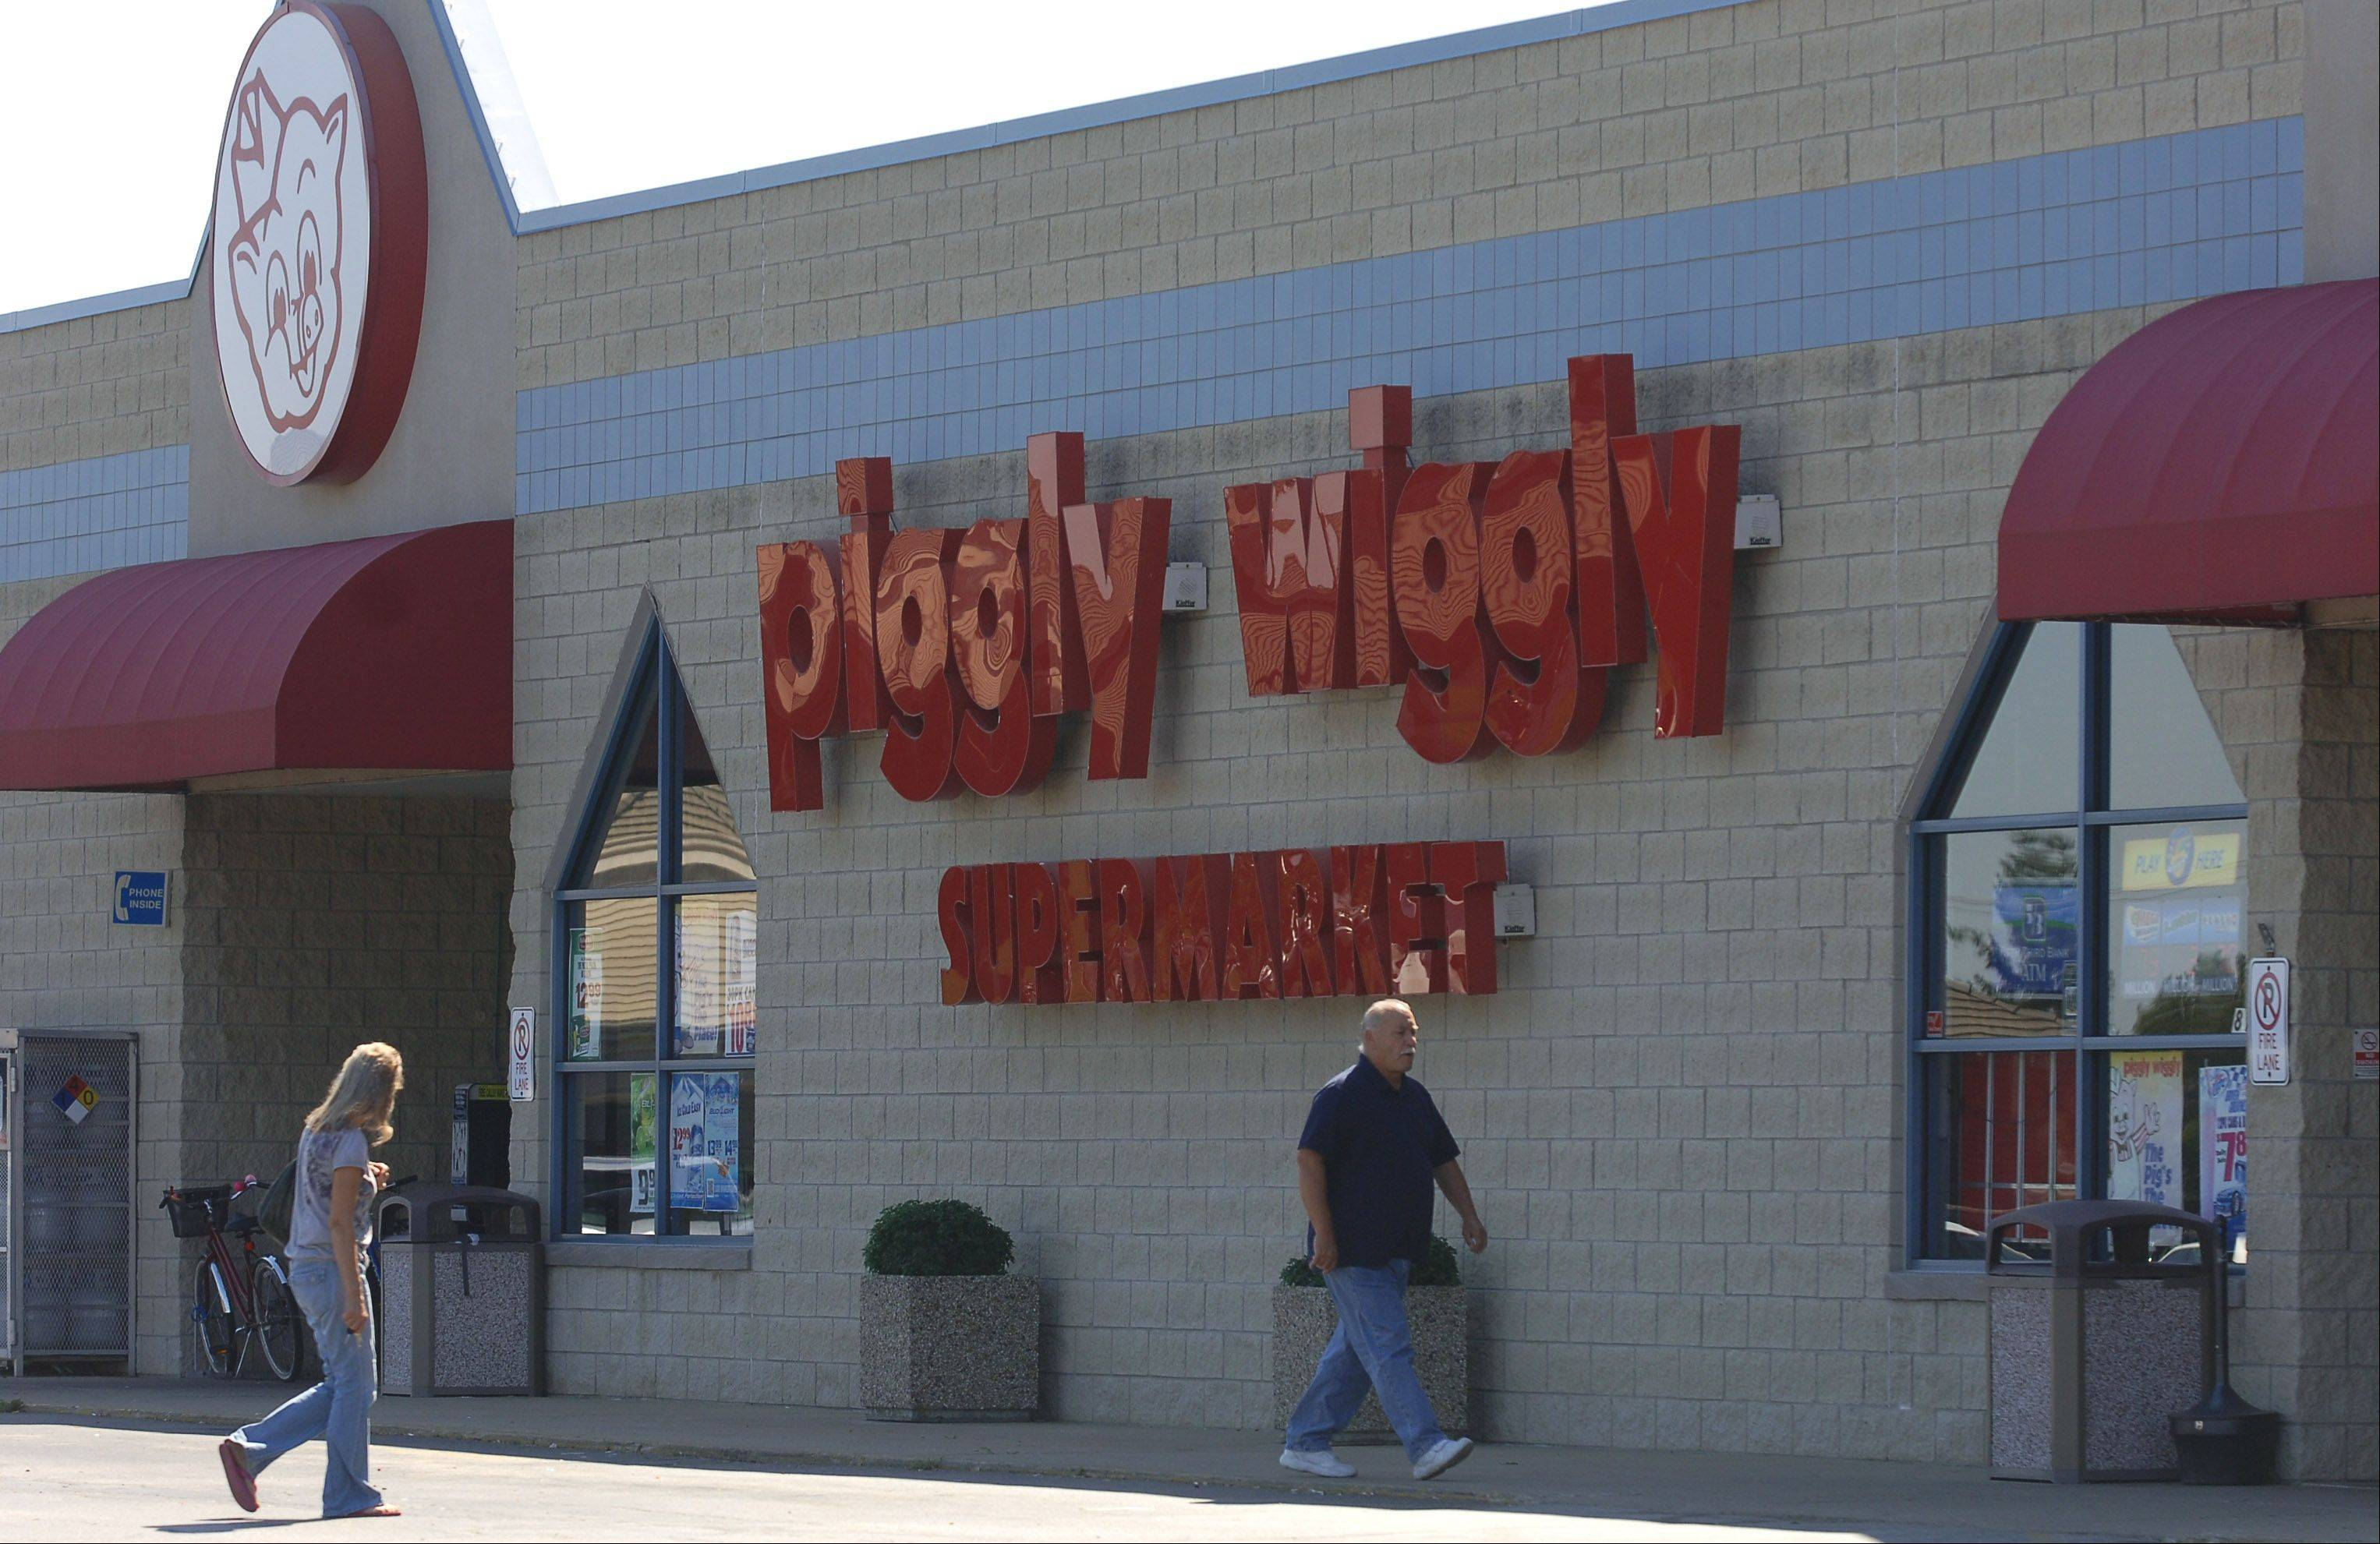 Grayslake�s Piggly Wiggly, in a plaza at Center Street and Atkinson Road, is scheduled to close Dec. 15. Plans call for Farmer�s Market Place to open in the same space April 1.